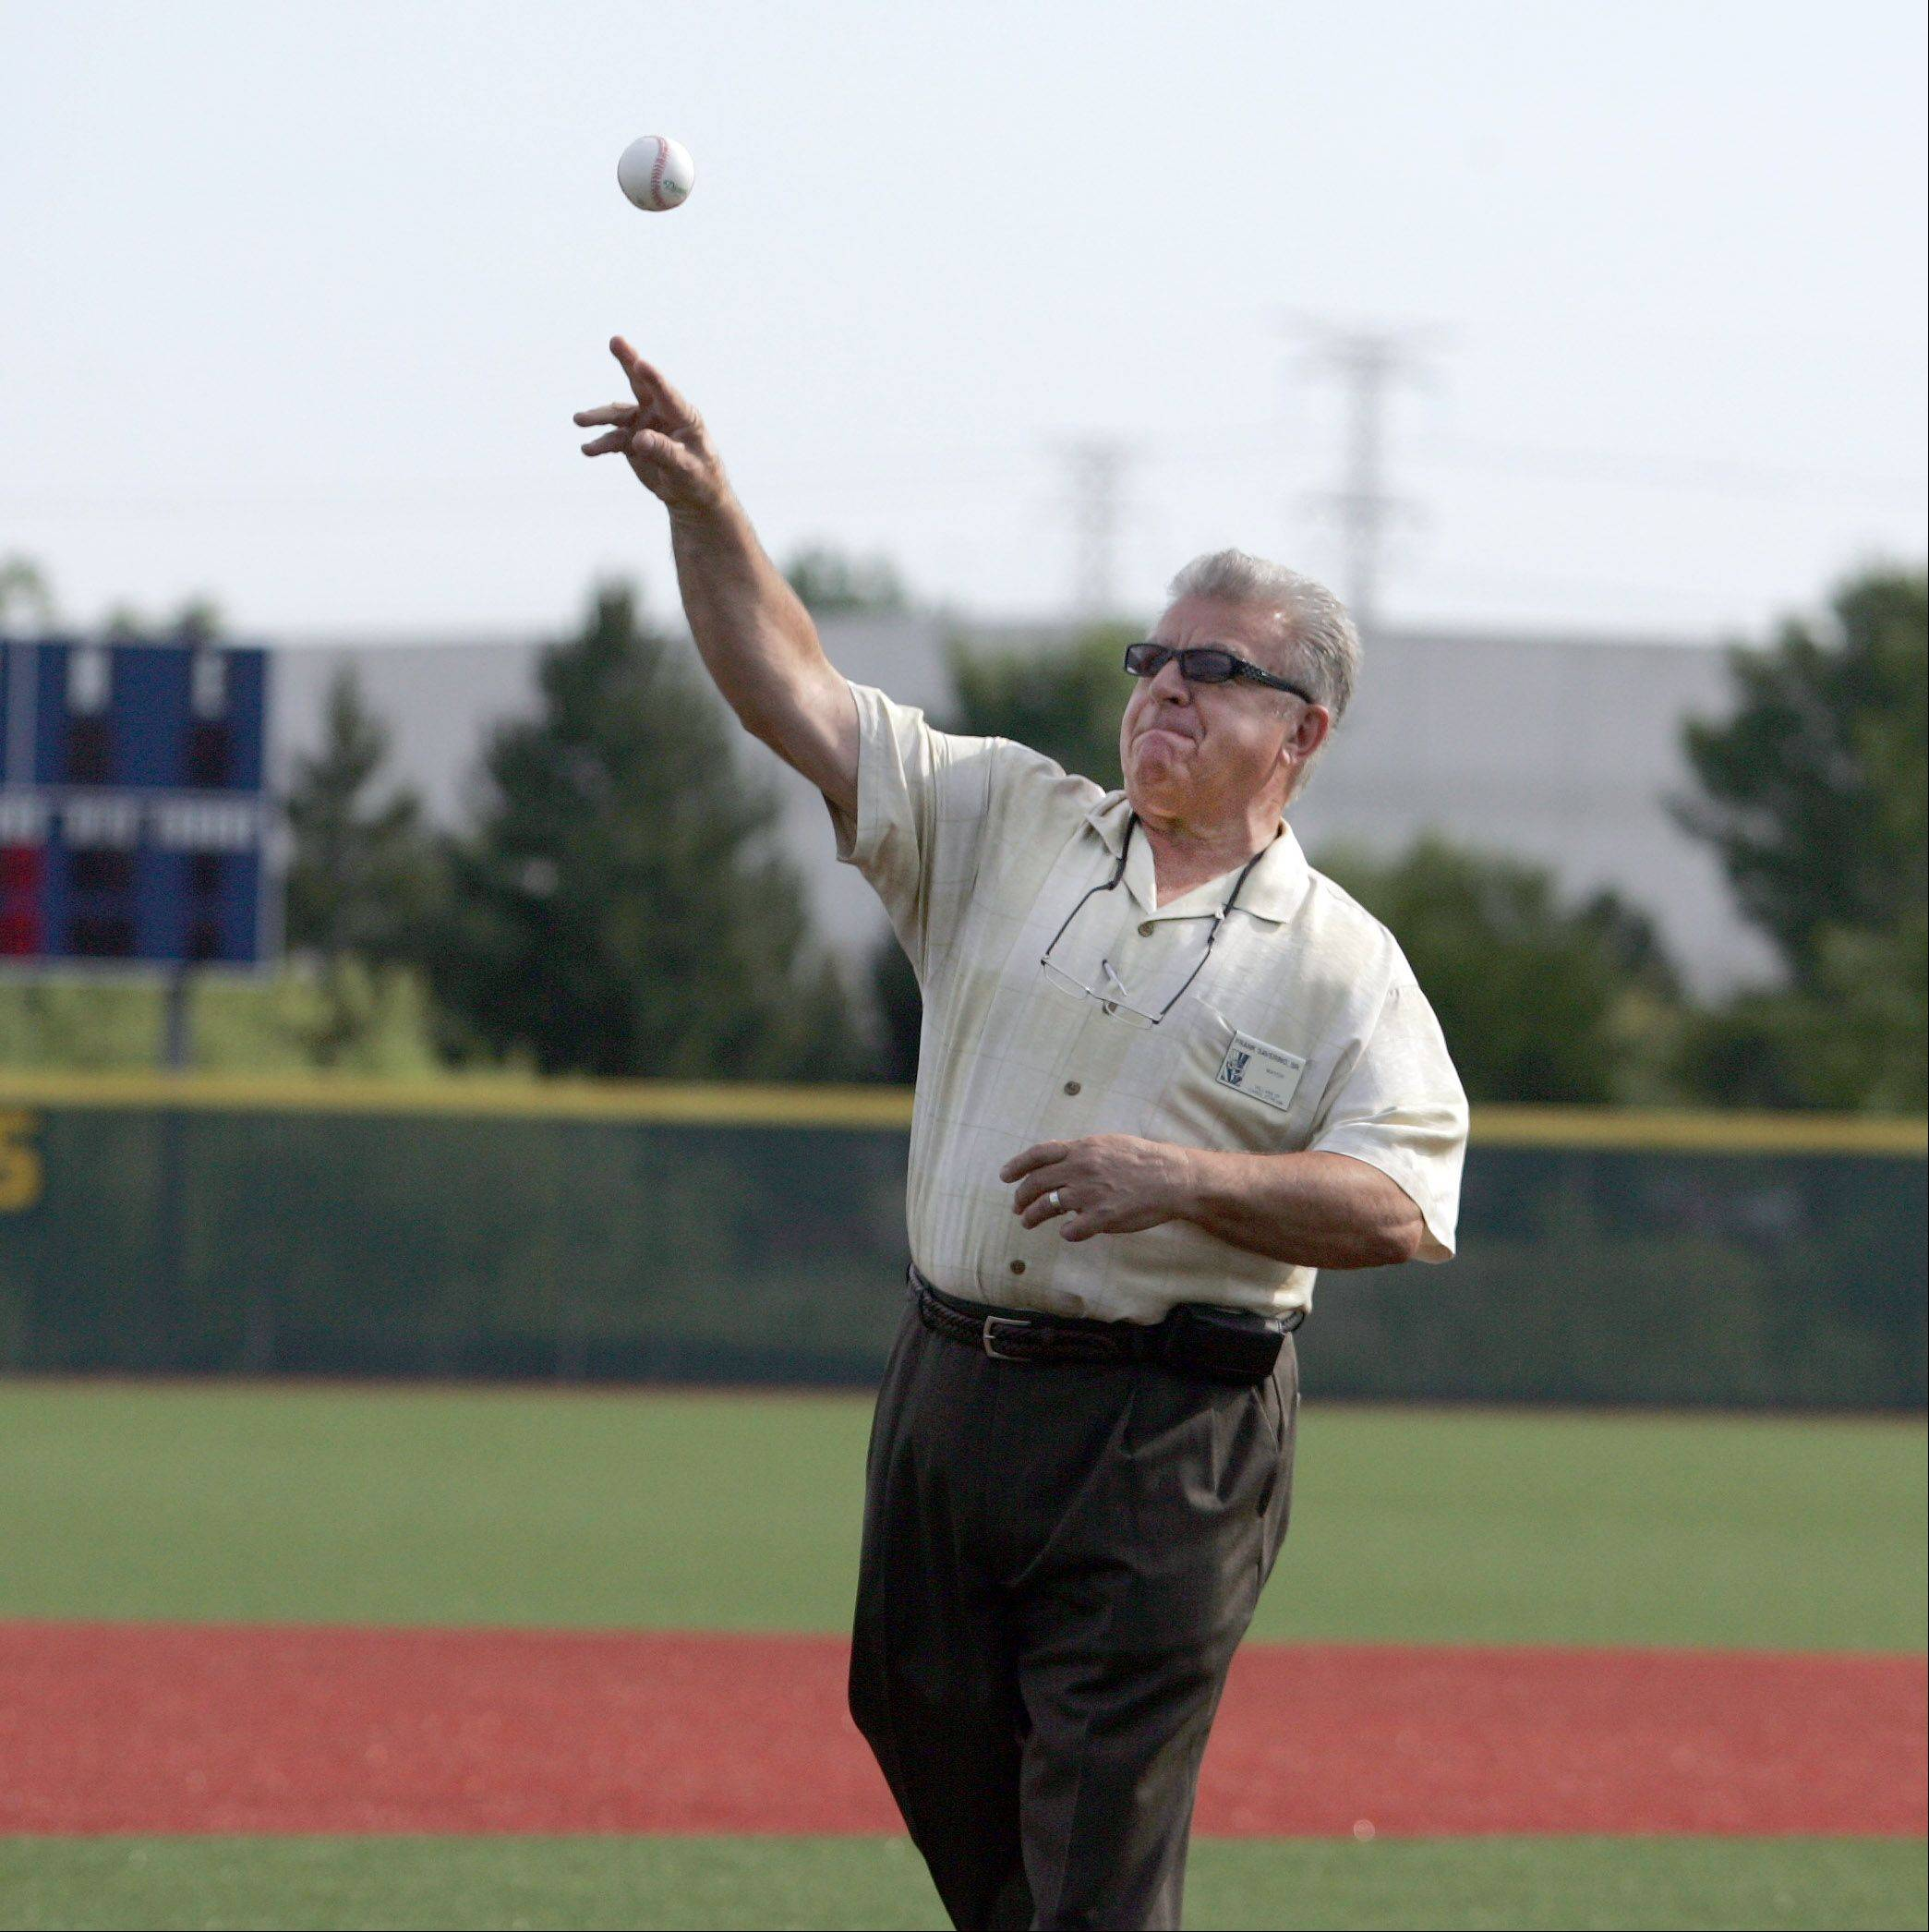 Carol Stream Mayor Frank Saverino throws out one of the first pitches Friday for the opening day of the Legion Post 76 Summer Classic Tournament in Carol Stream. Wheaton Mayor Michael Gresk and Wheaton College Athletic Director Julie Davis also threw out pitches.